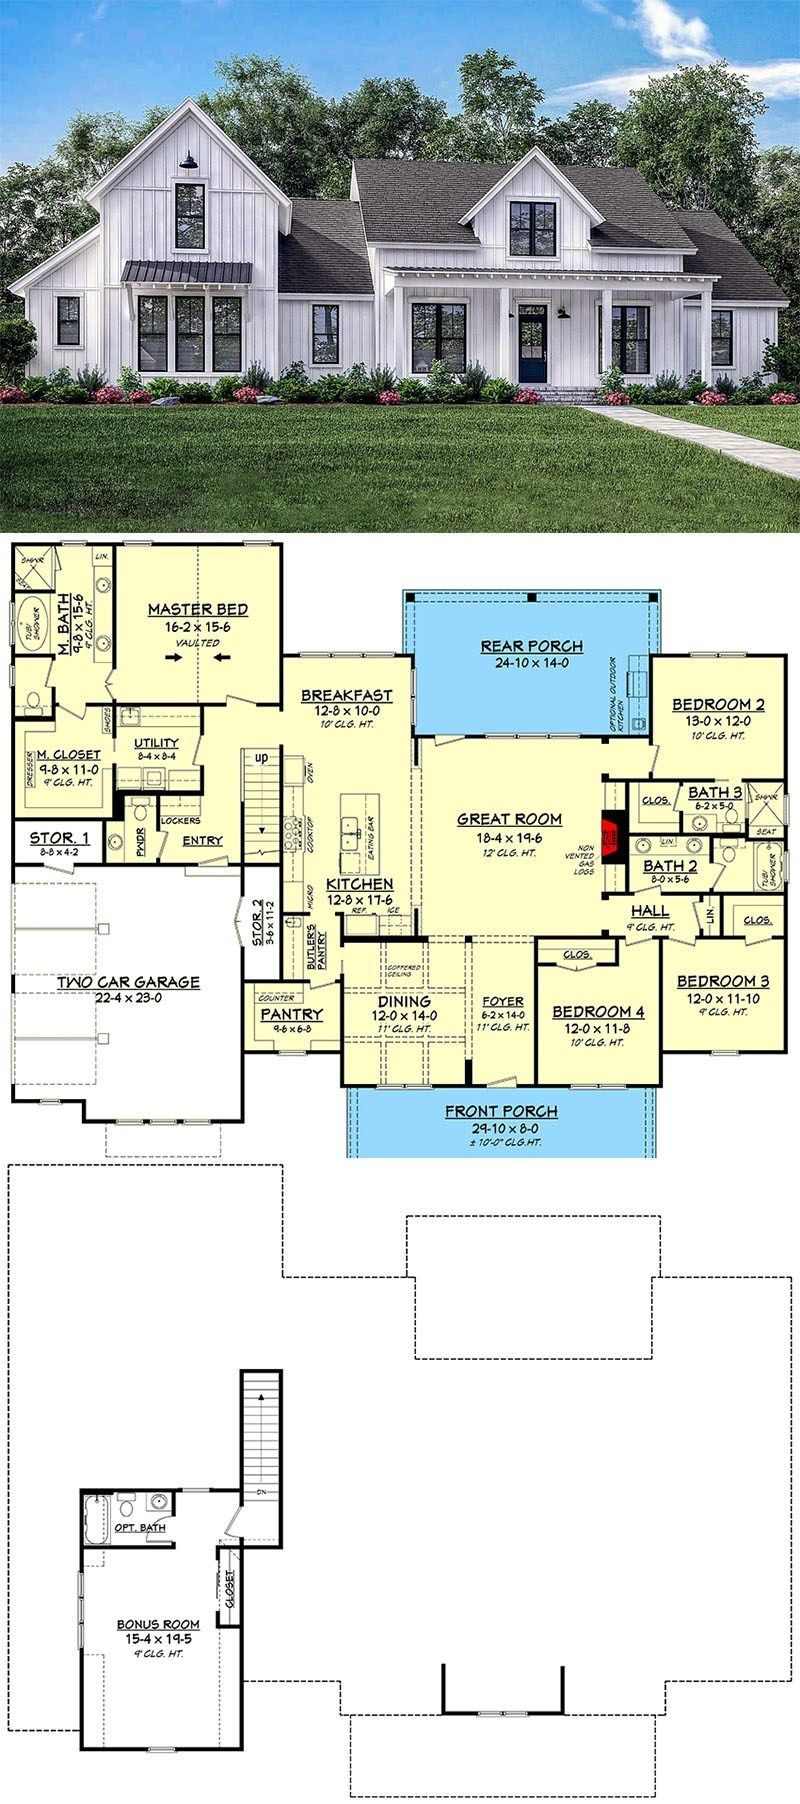 7 Most Popular Farmhouse Plans With Pictures Nikki S Plate House Plans Farmhouse House Blueprints Farmhouse Layout